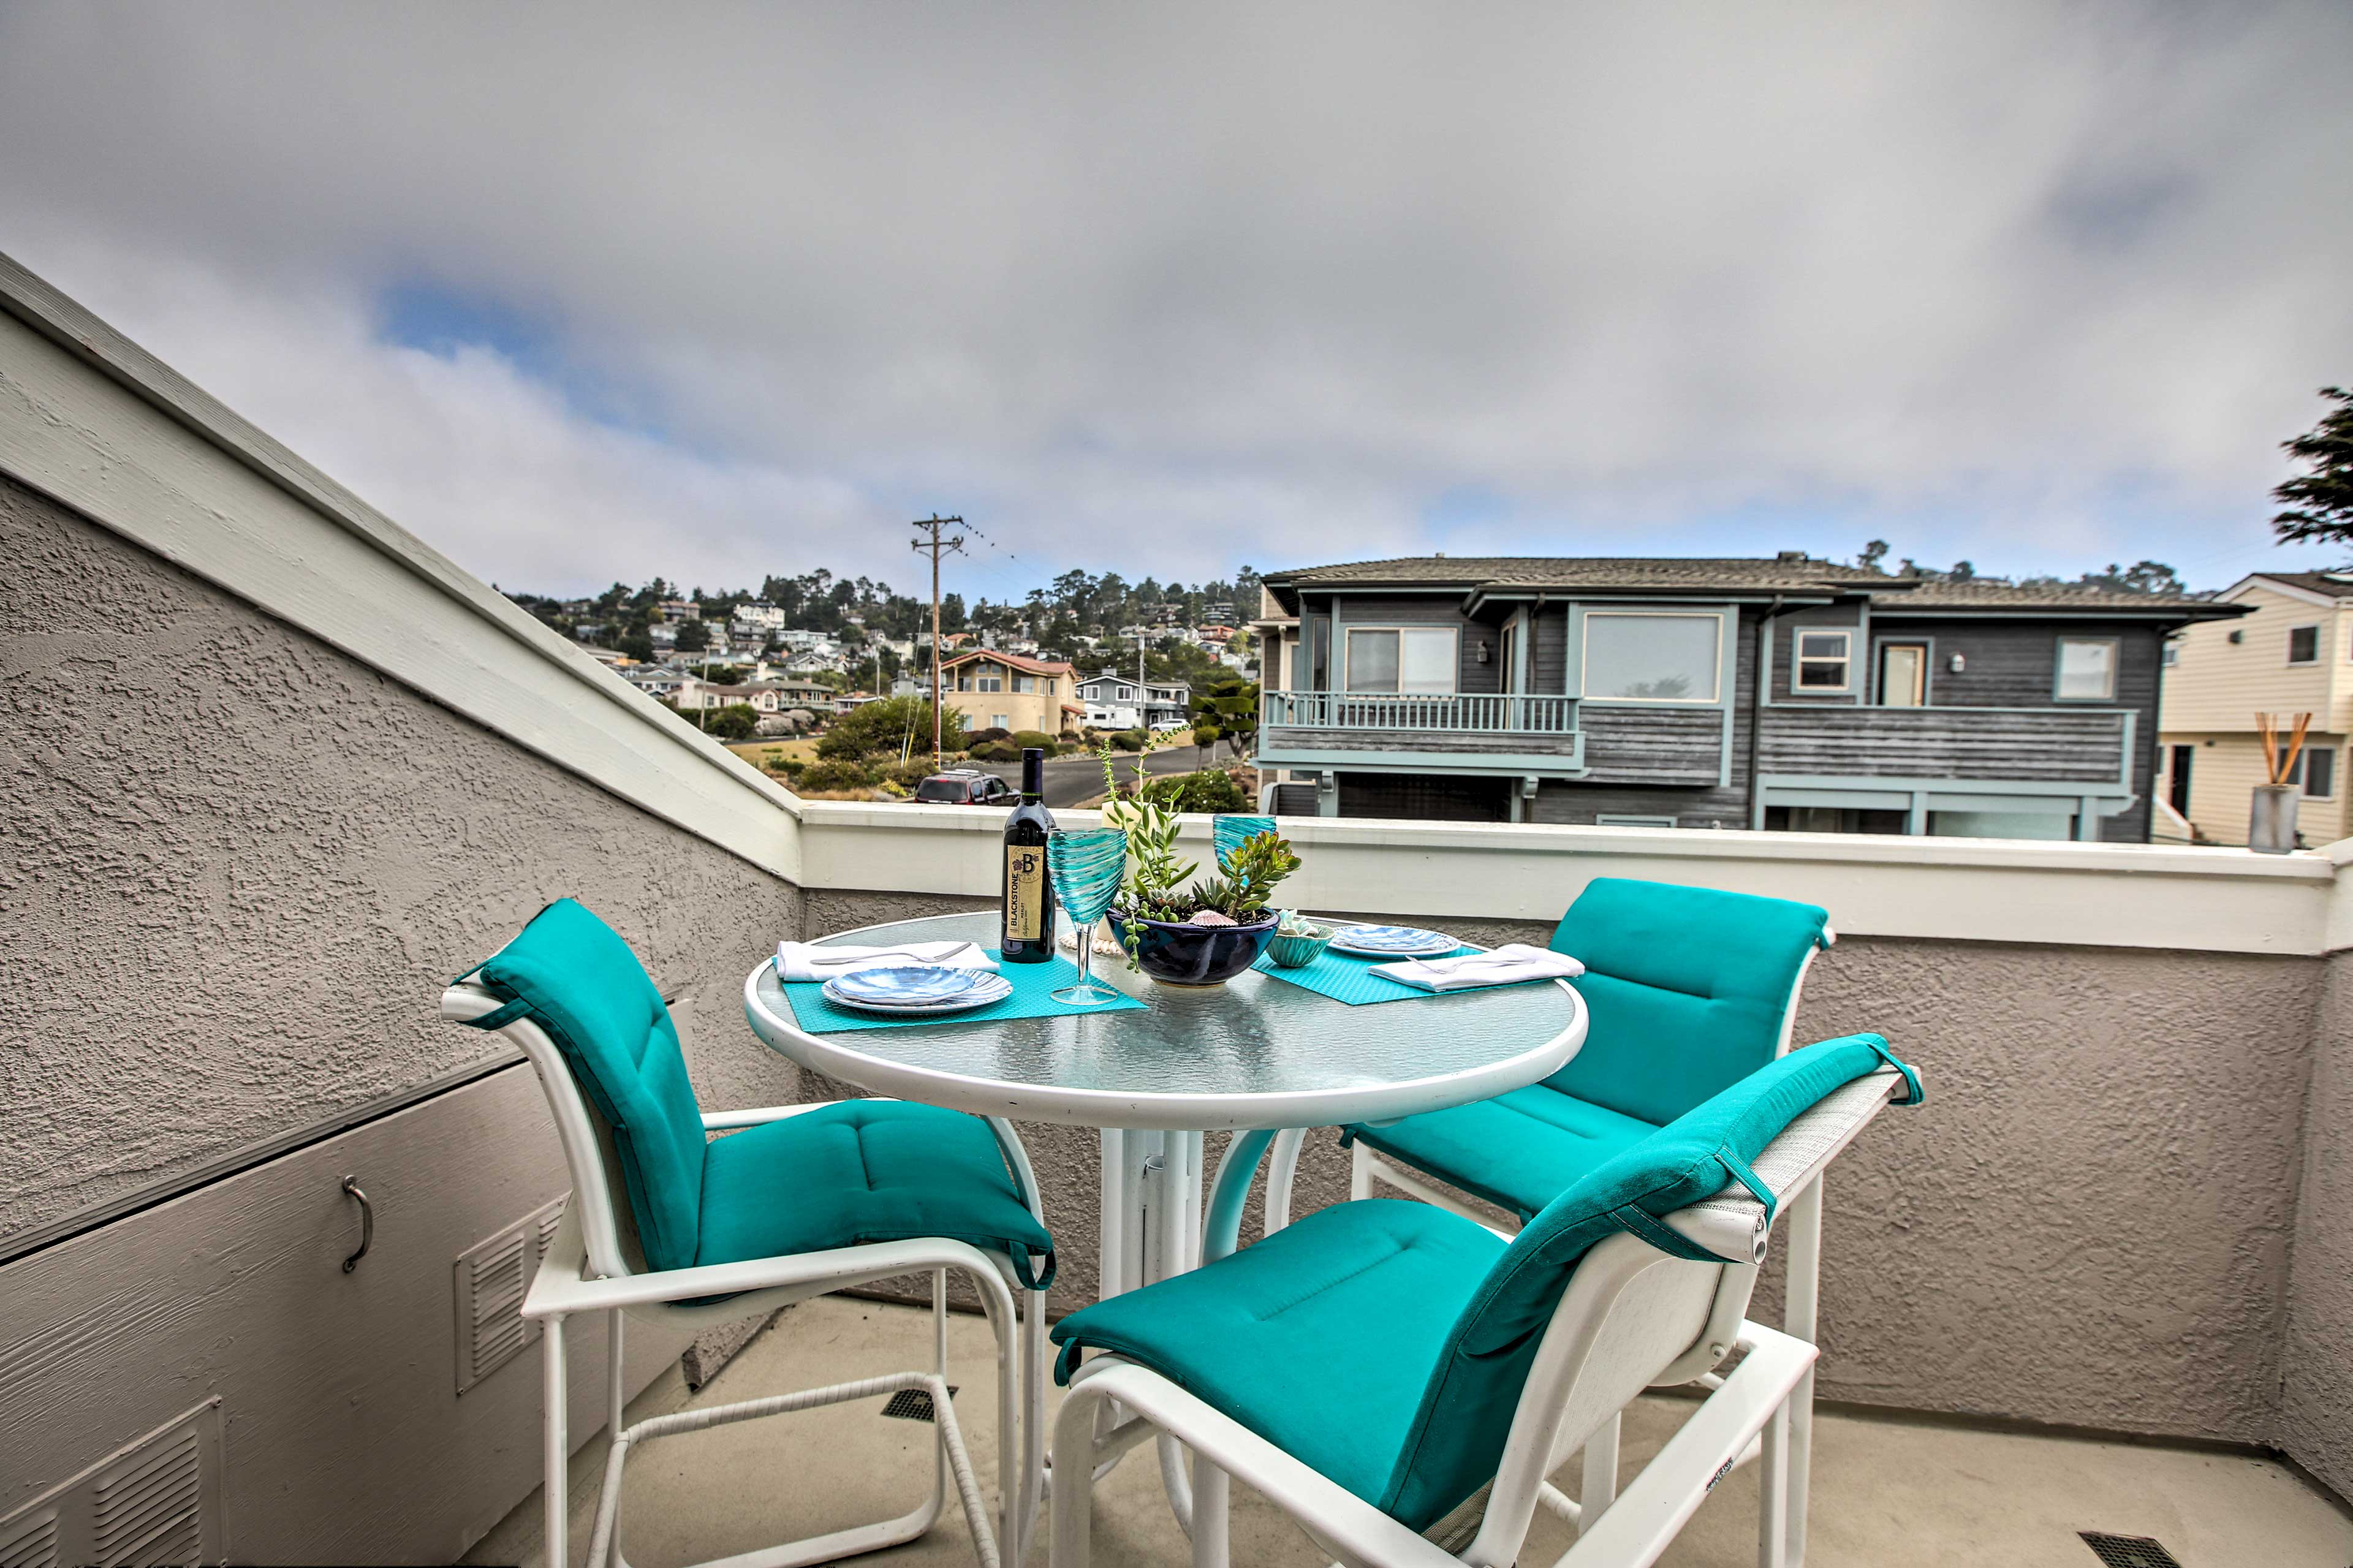 Whip up a zesty home-cooked meal to be enjoyed alfresco!